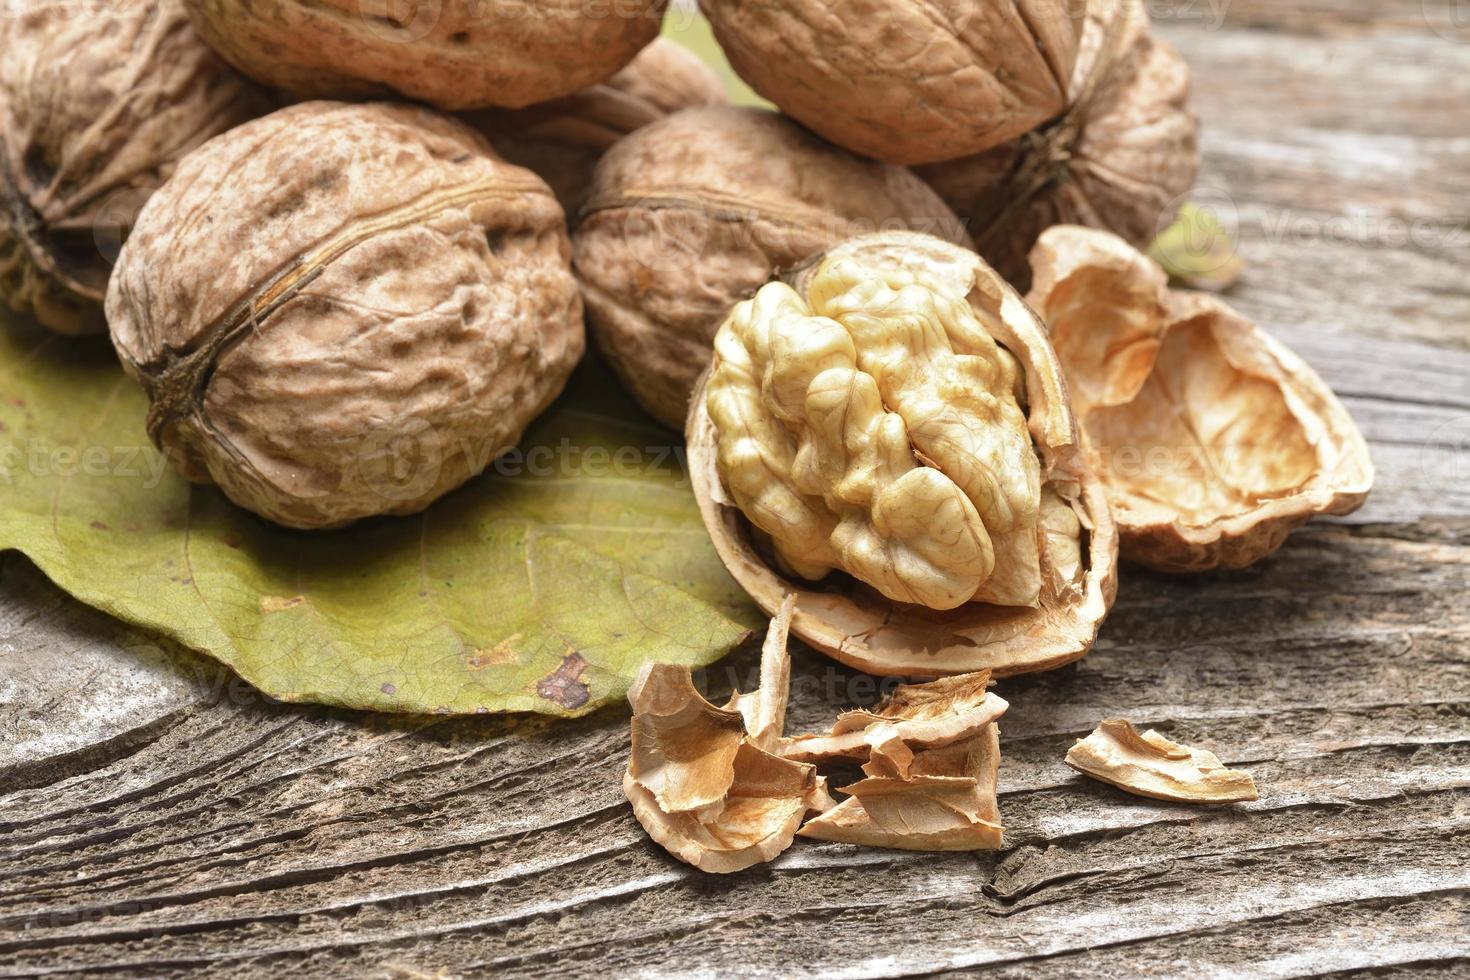 Walnut kernels and whole walnuts on rustic old wooden table photo